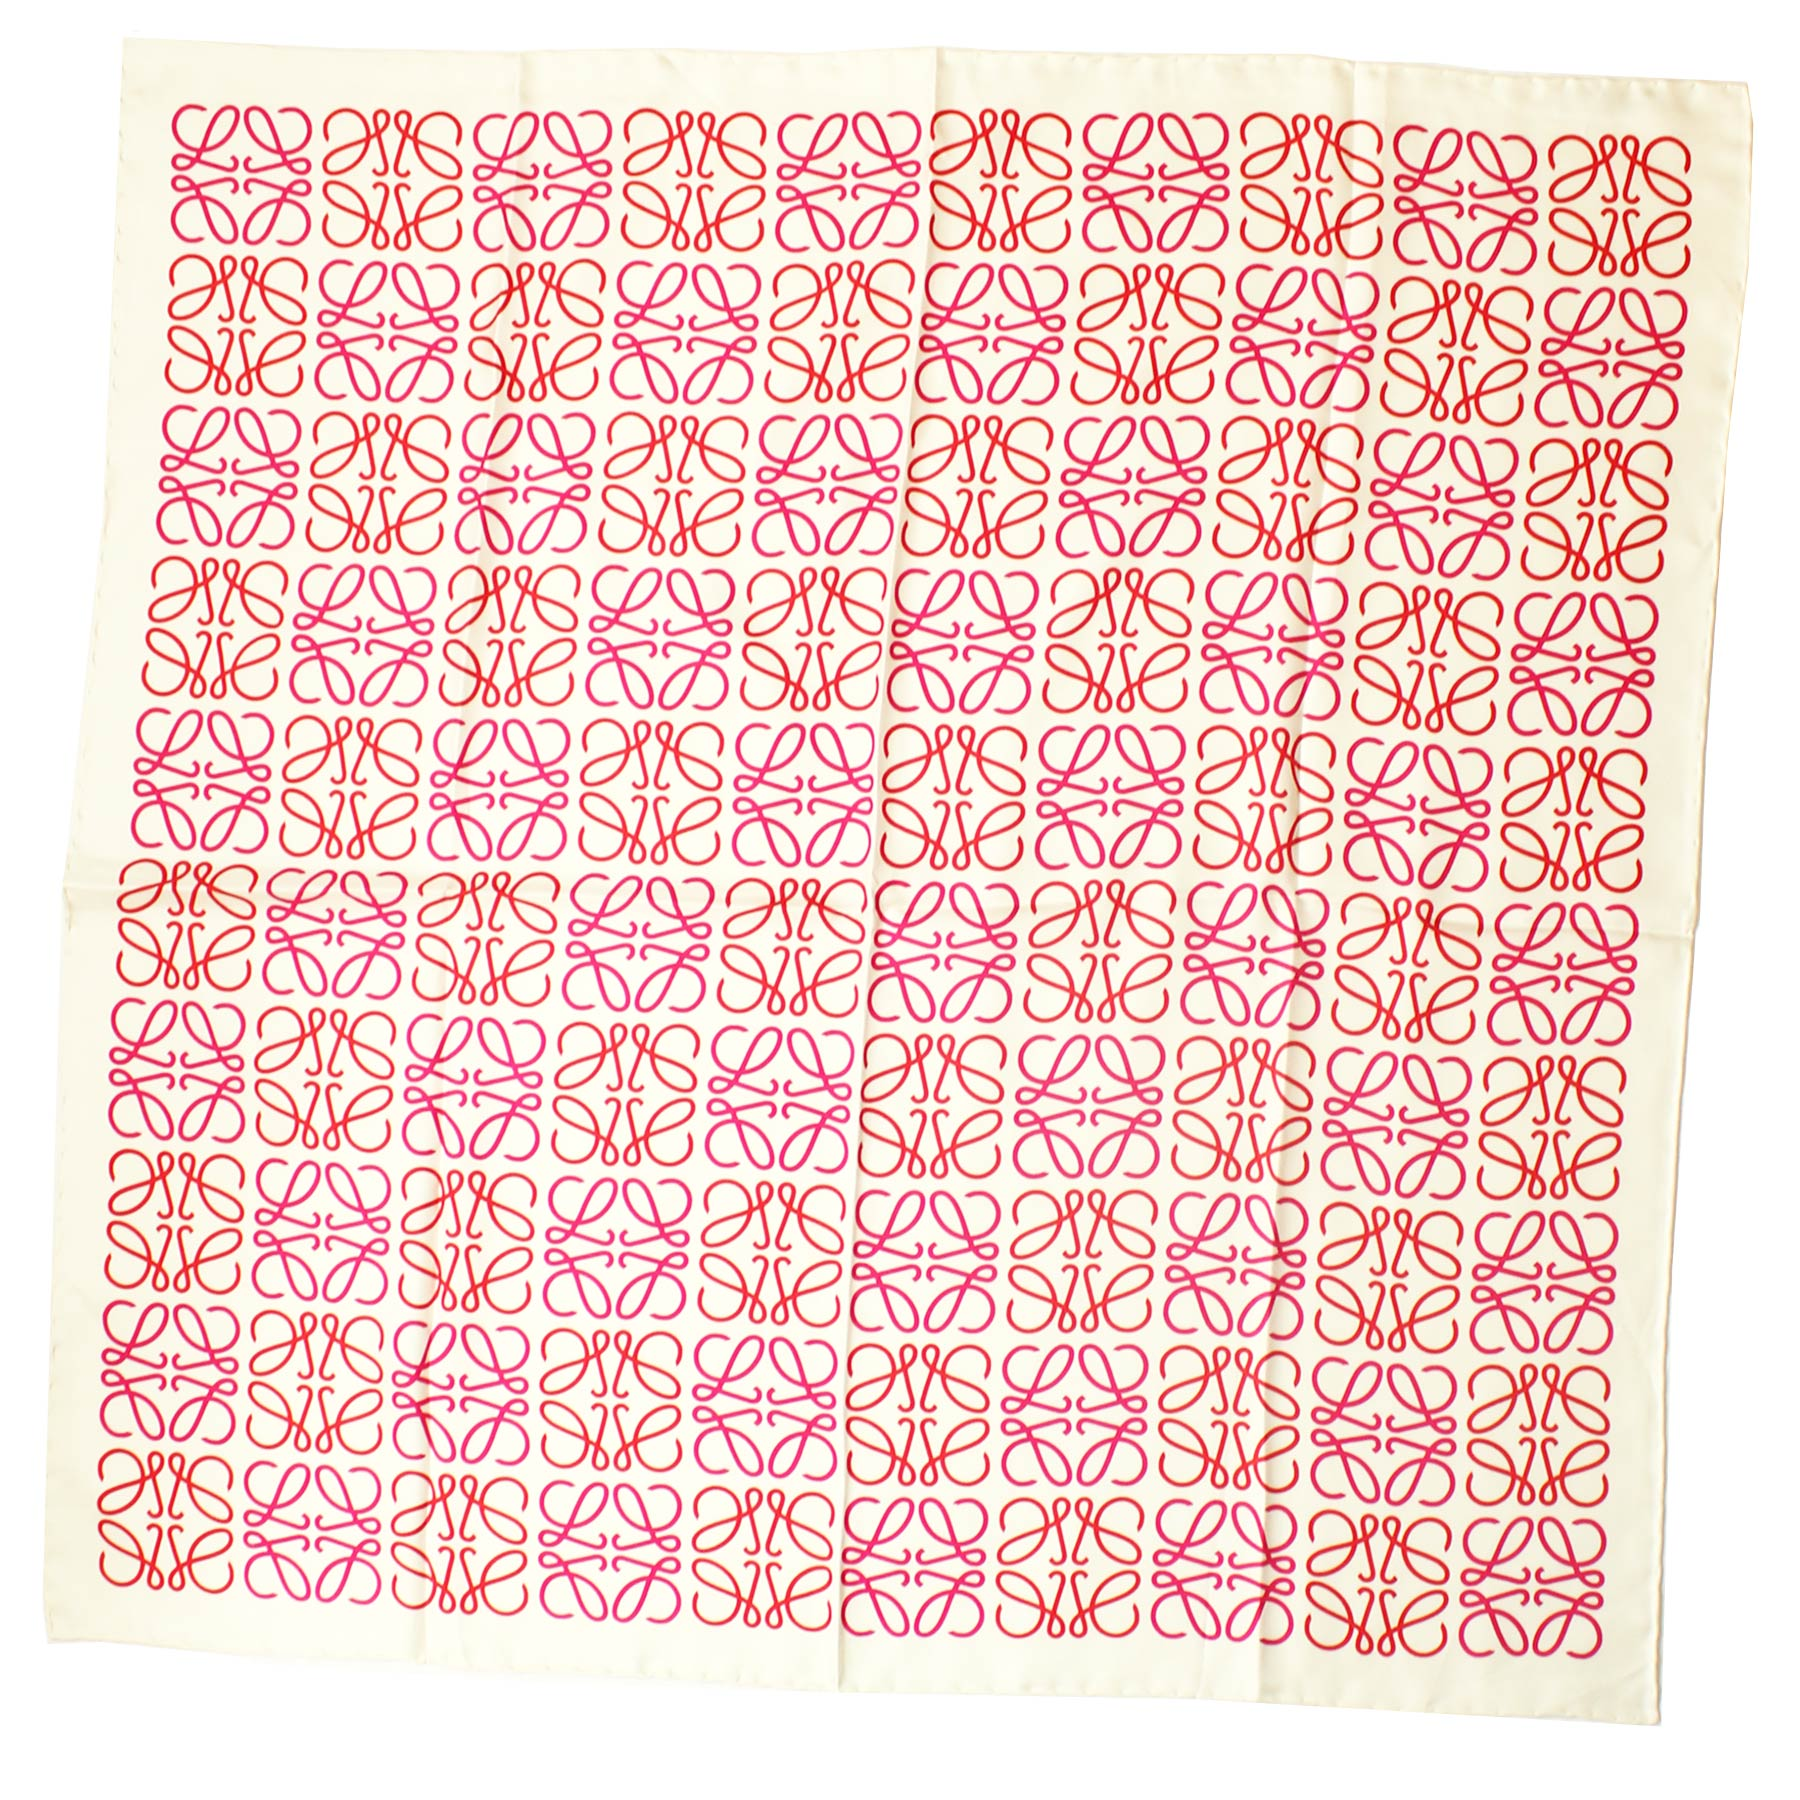 Loewe Scarf White Pink Red Anagram Design